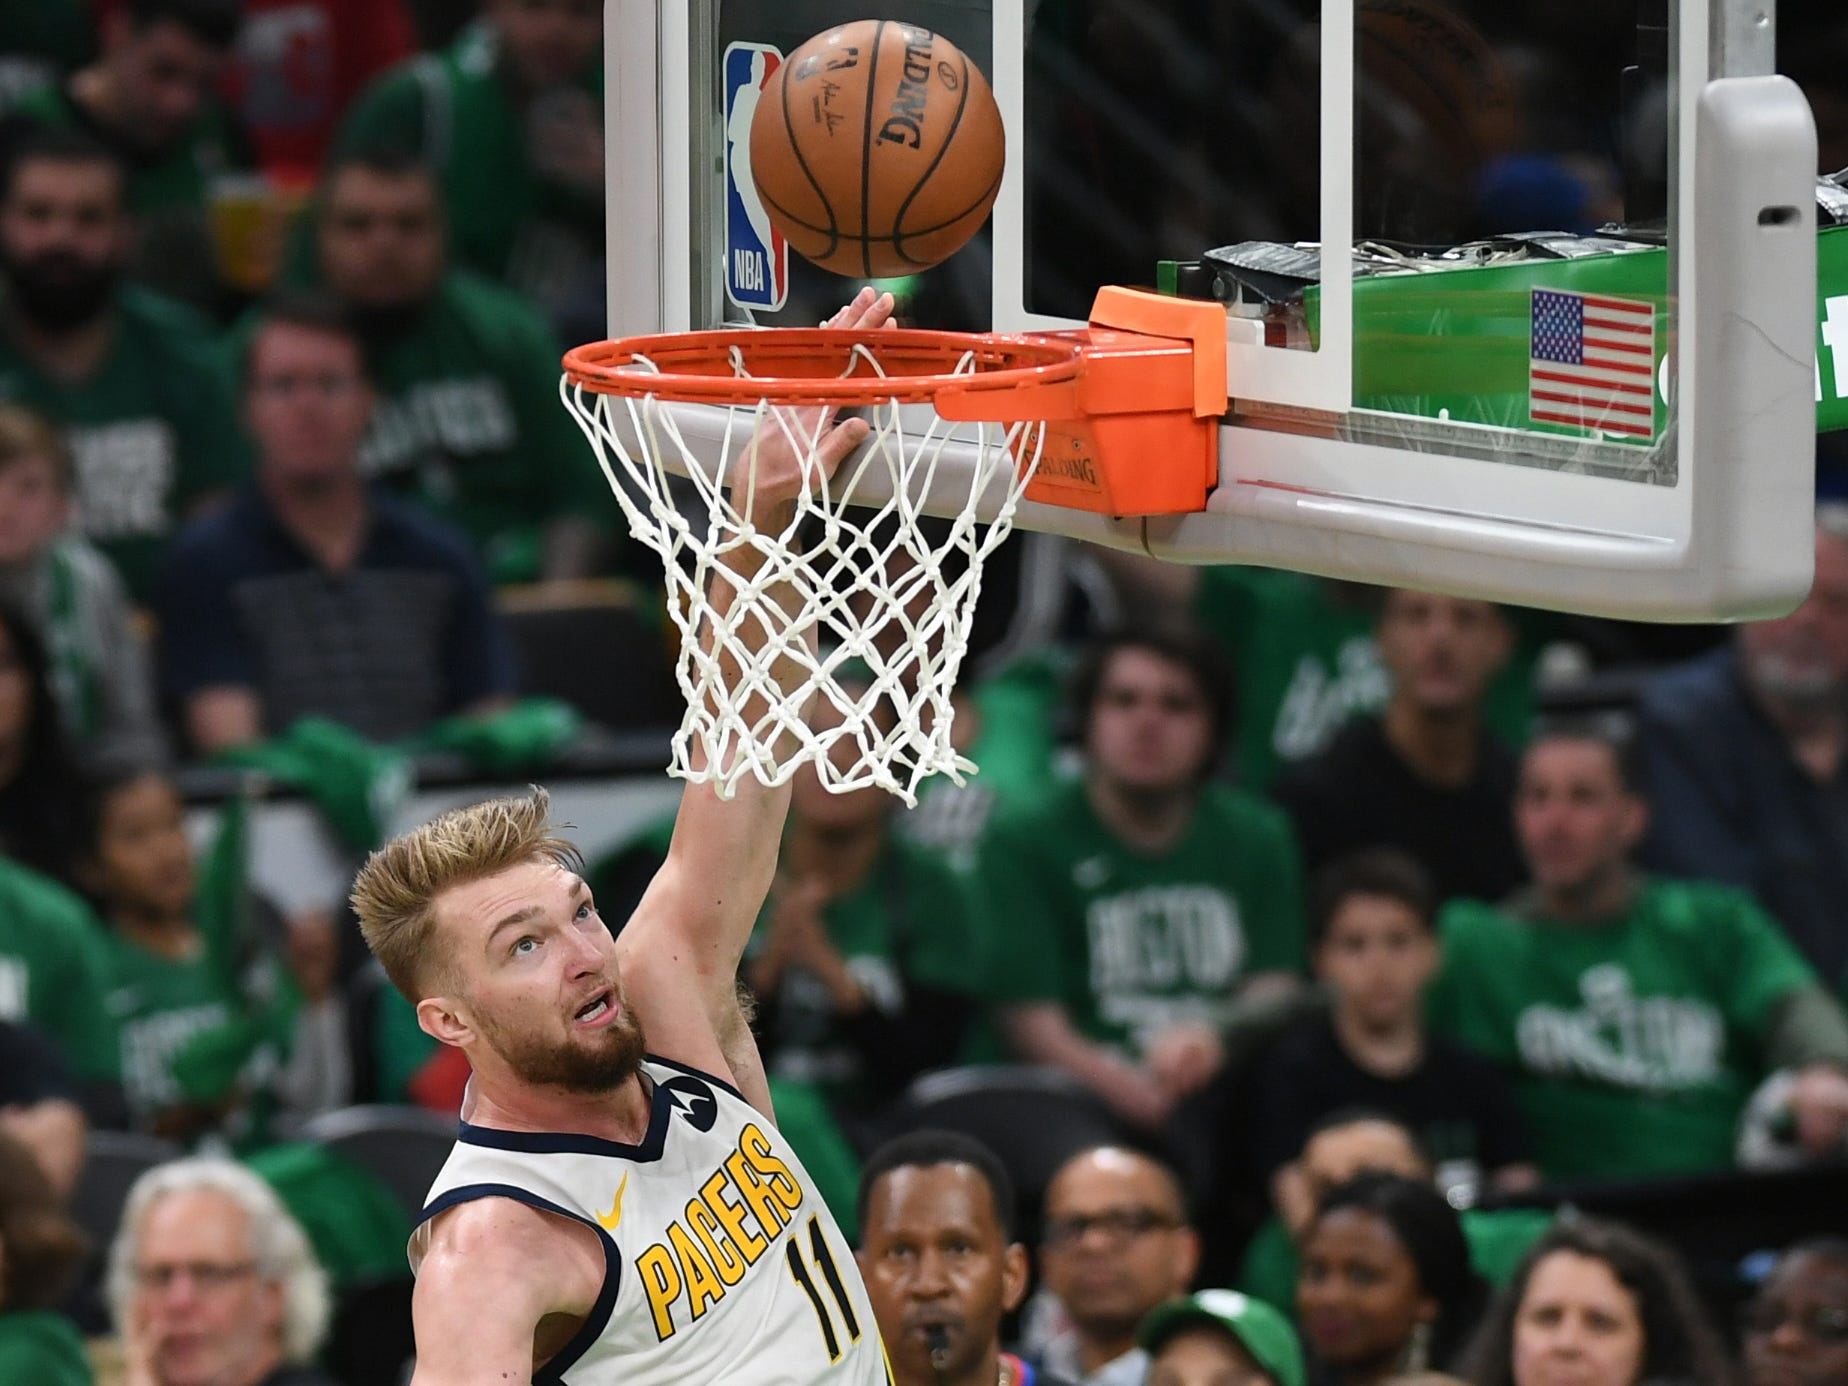 Apr 14, 2019; Boston, MA, USA; Indiana Pacers forward Domantas Sabonis (11) lays the ball in the basket during the first half in game one of the first round of the 2019 NBA Playoffs against the Boston Celtics at TD Garden.